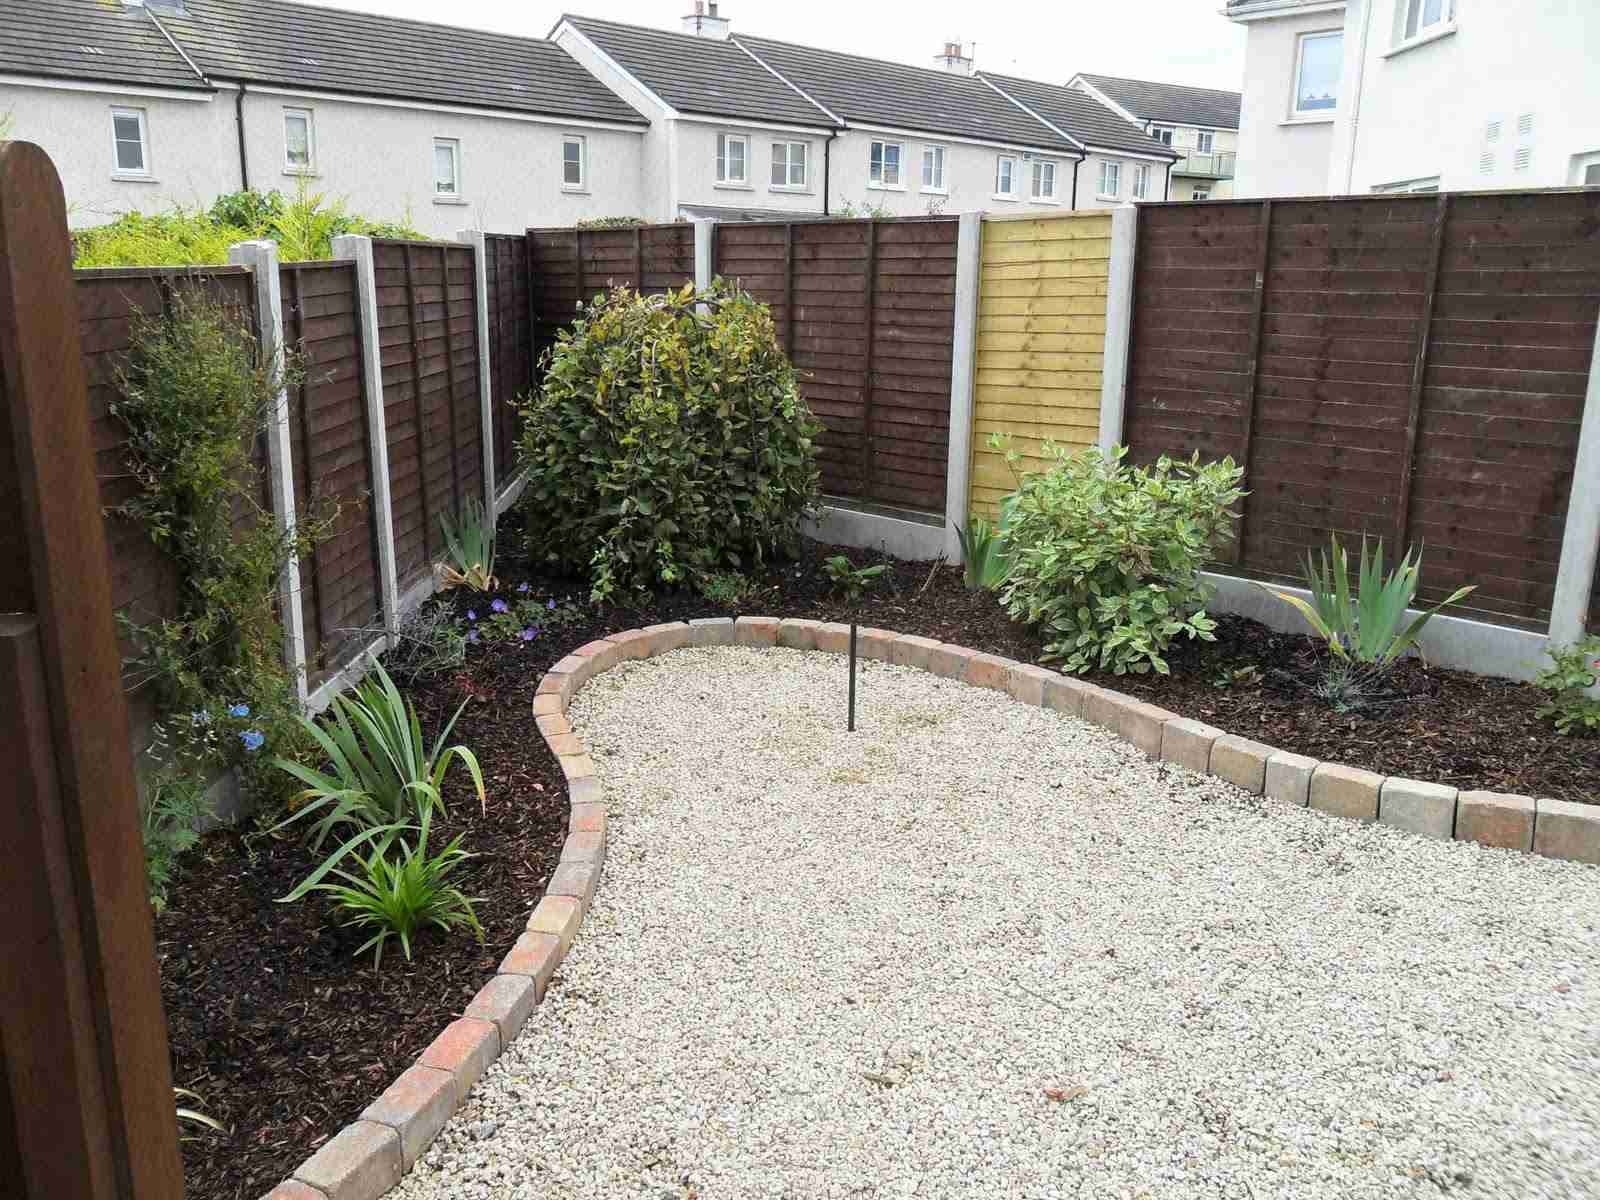 Landscaping Fencing Balbriggan Co Dublin Concrete Post And Panel Fencing Low Maintenance